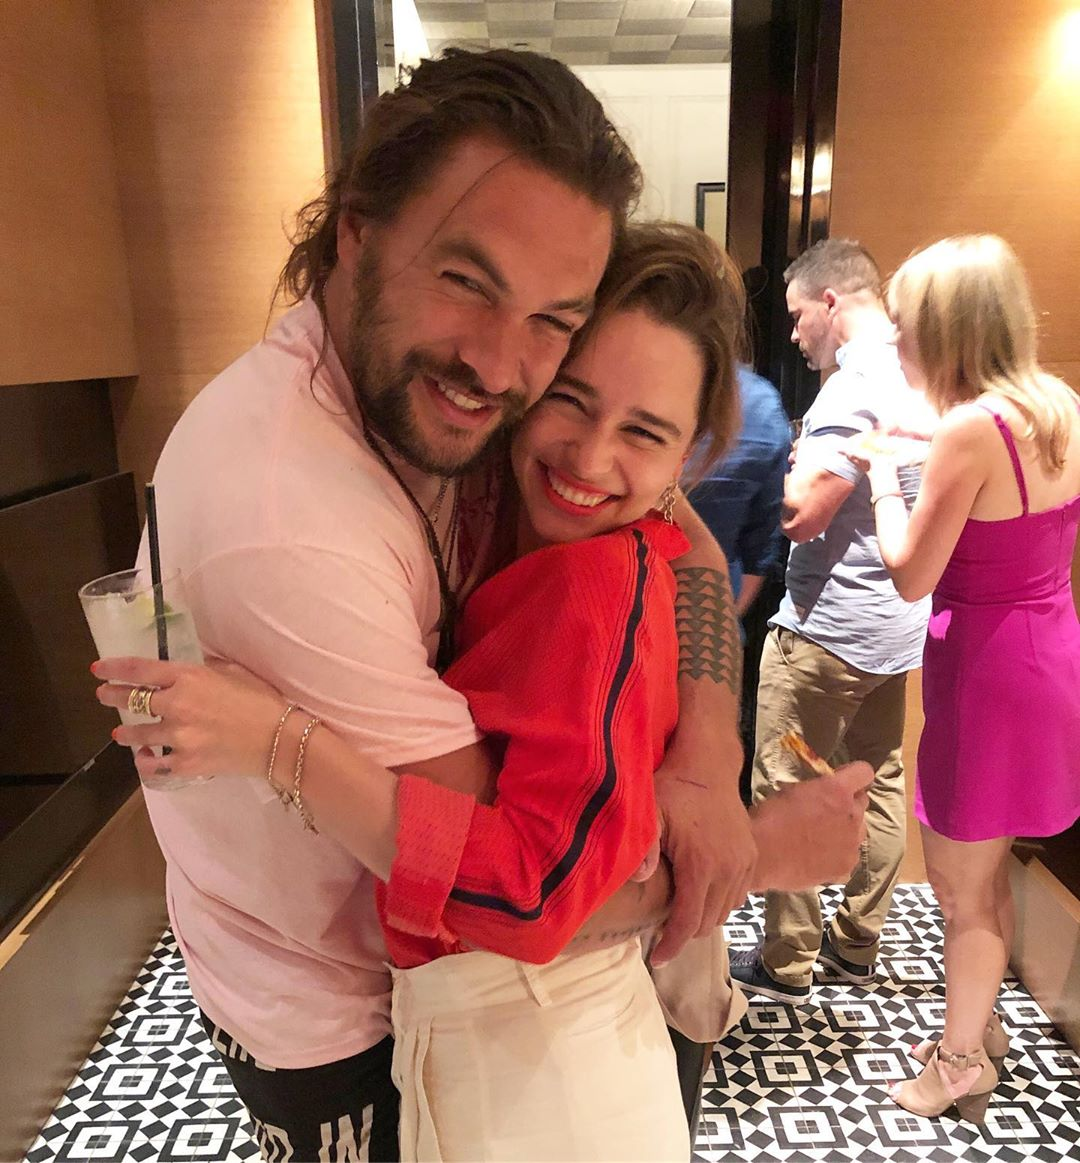 Game of Thrones' Emilia Clarke, Jason Momoa reunite as she wishes him an early happy birthday